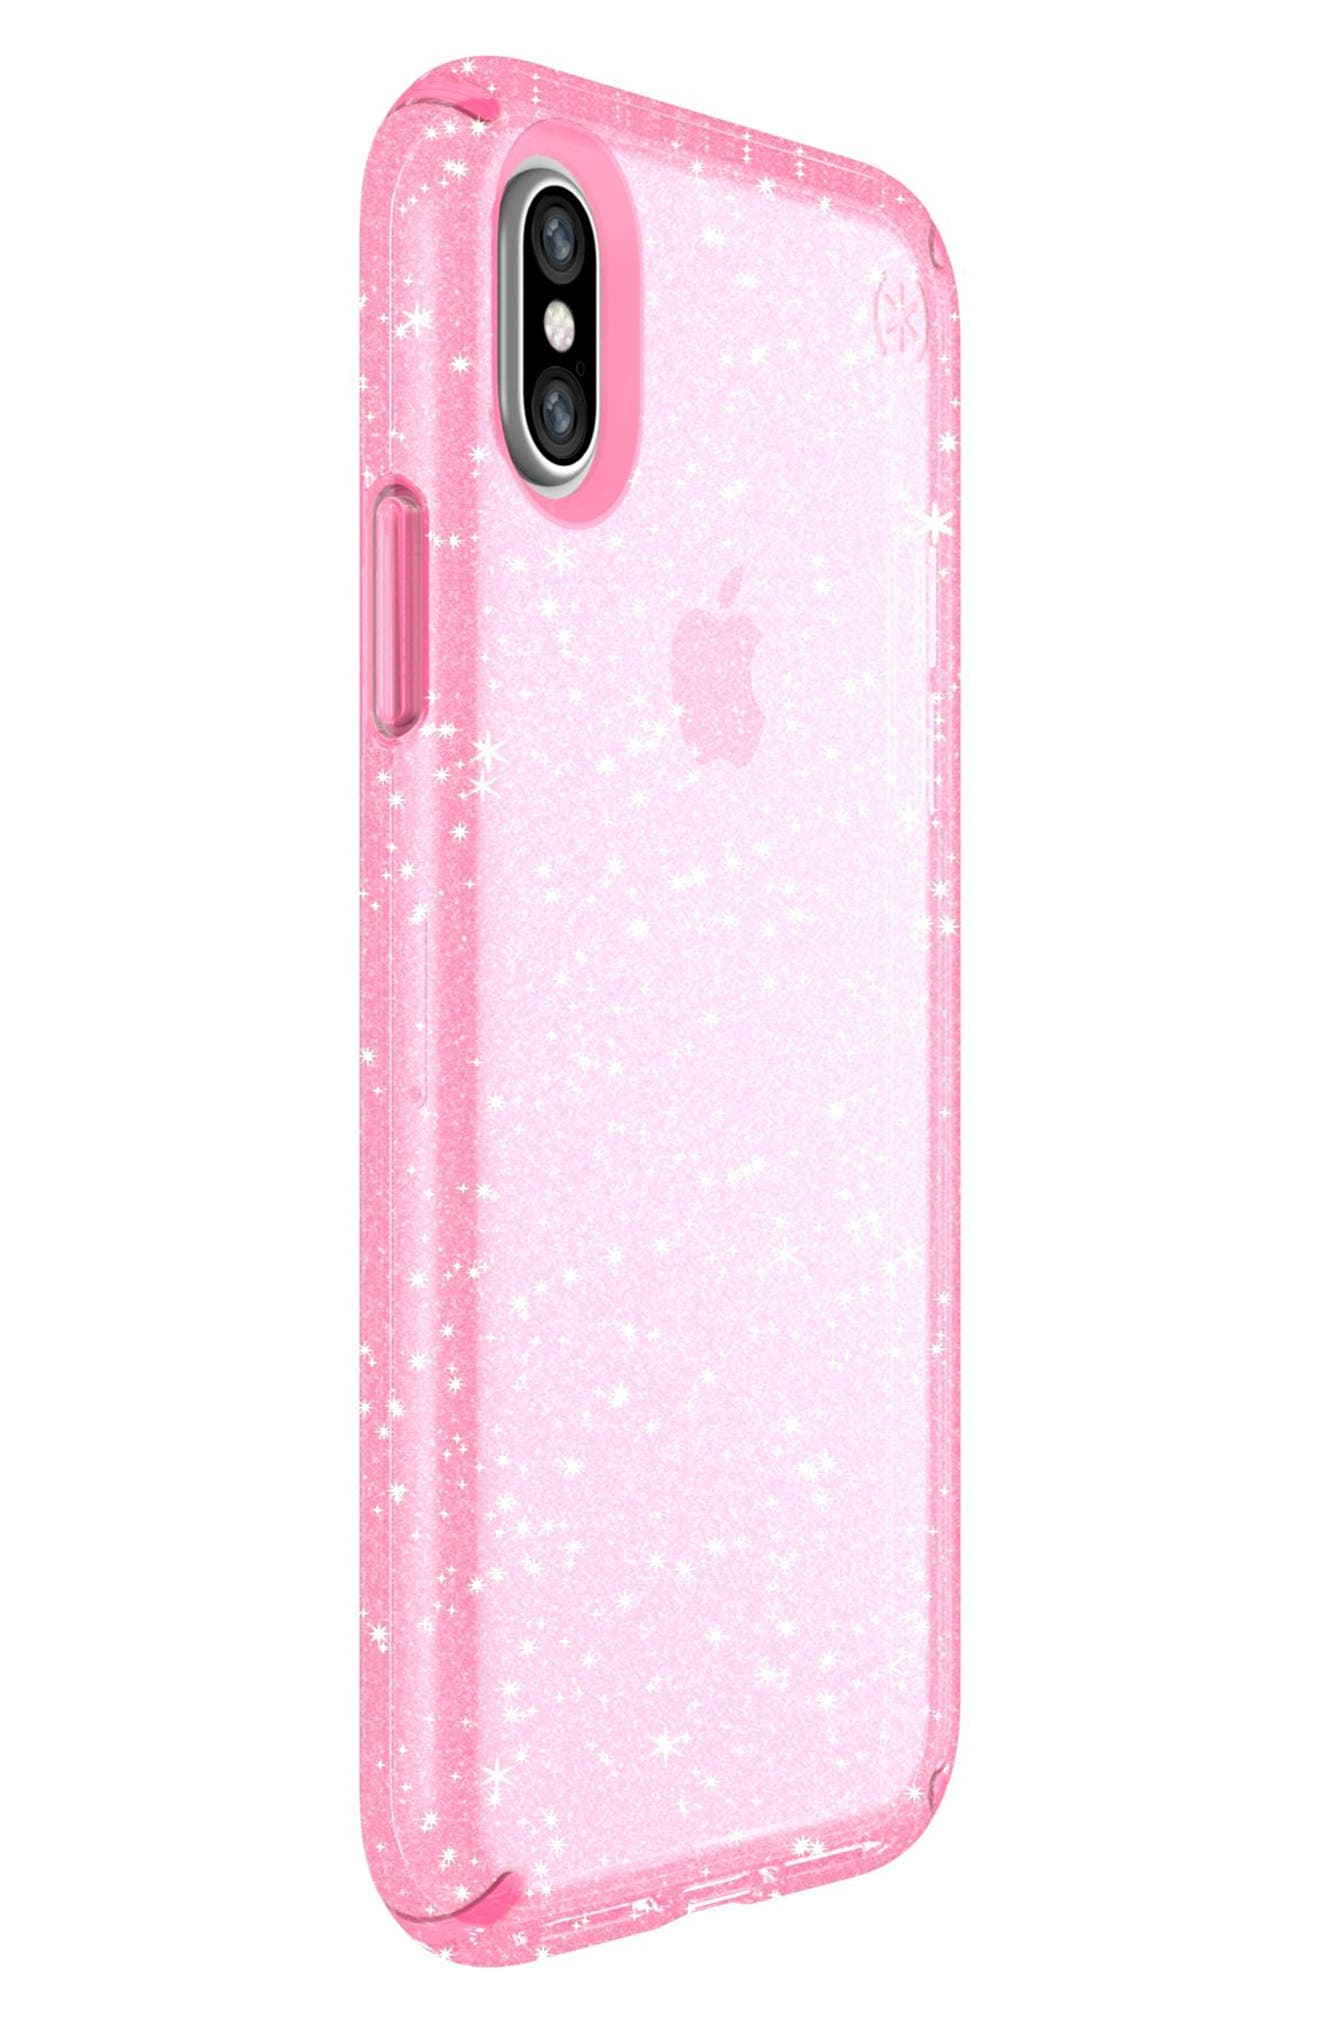 Transparent iPhone X & Xs Case,                             Alternate thumbnail 6, color,                             BELLA PINK GOLD GLITTER/ PINK